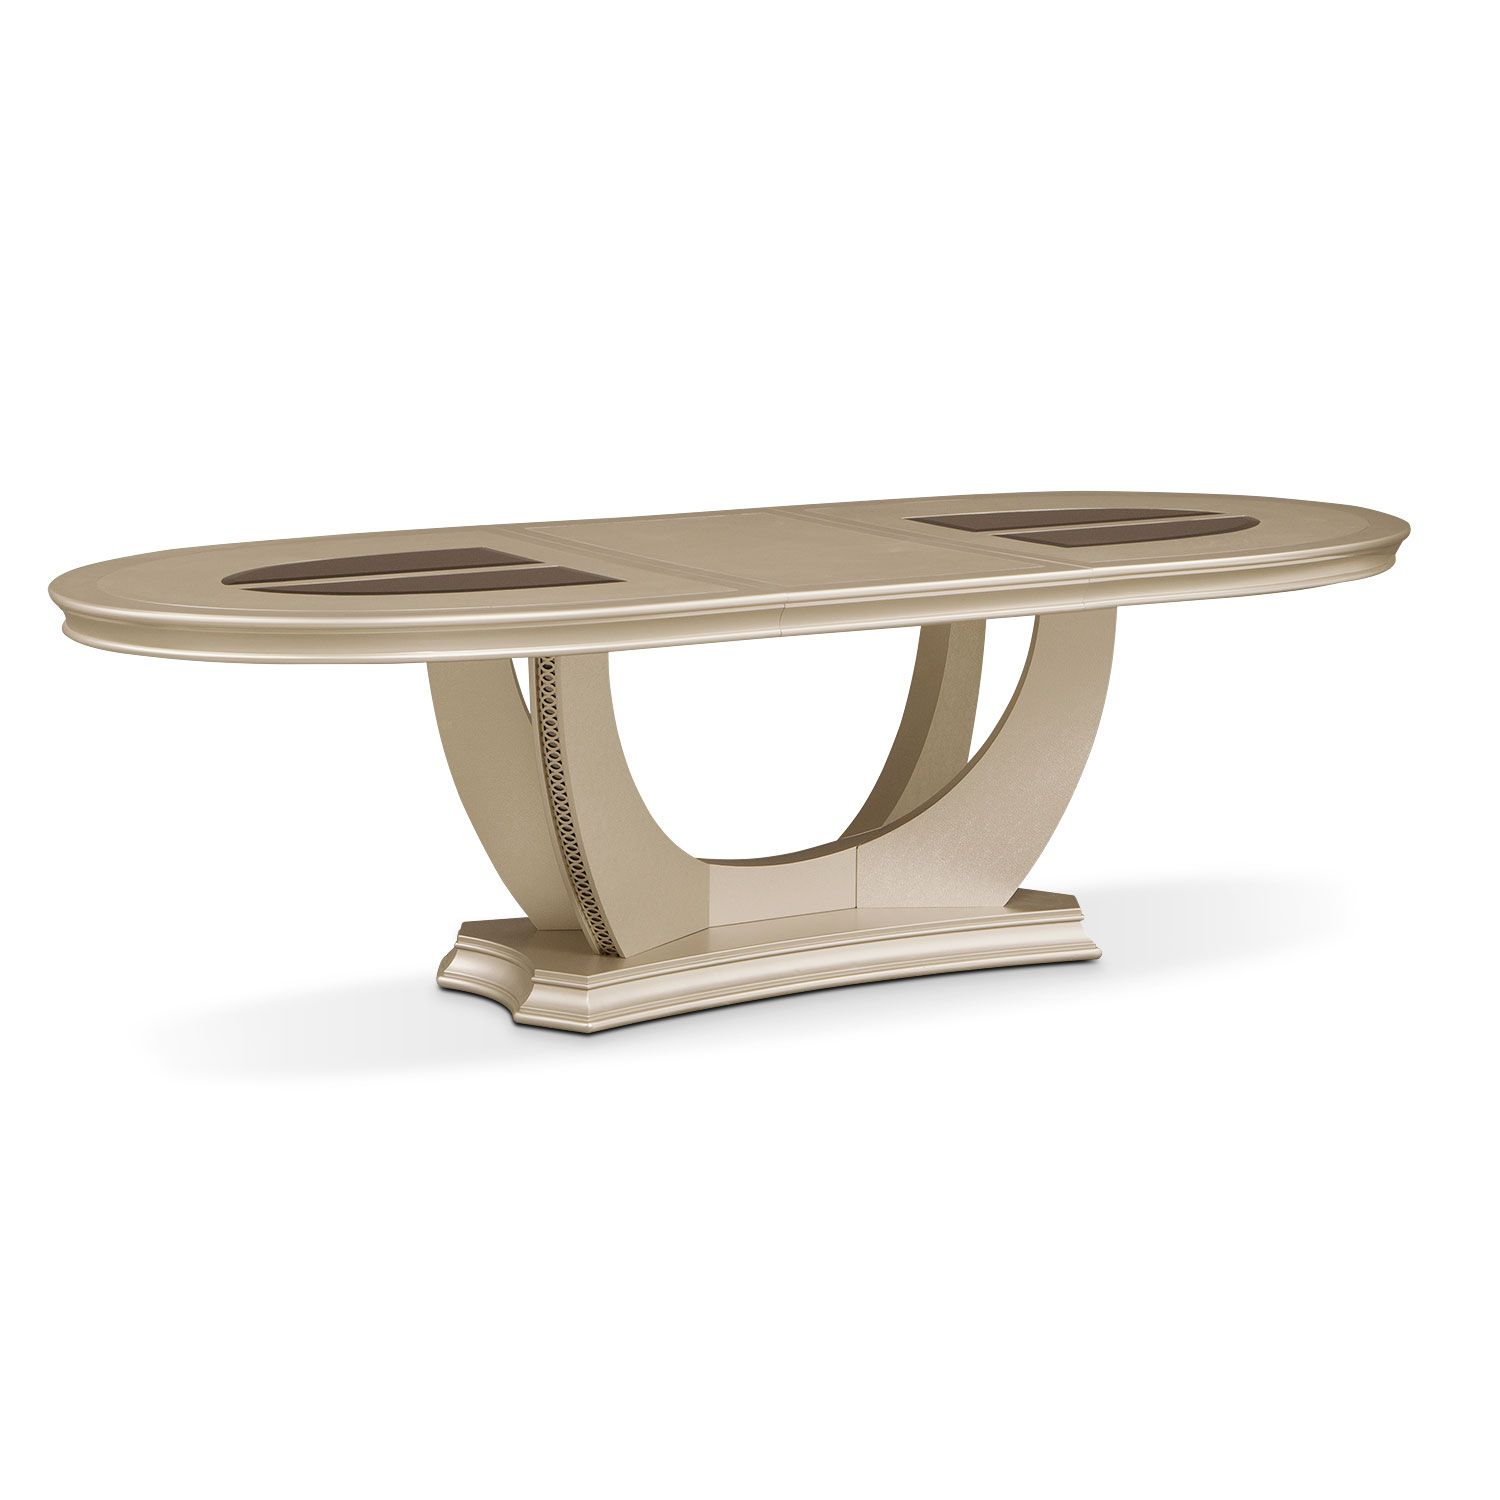 Alluring Tempo When Drama And Glamour Come Together In A Design Like This It Can Only Be The Allegr Dining Table Oval Table Dining Coffee Table Design Modern [ 1500 x 1500 Pixel ]